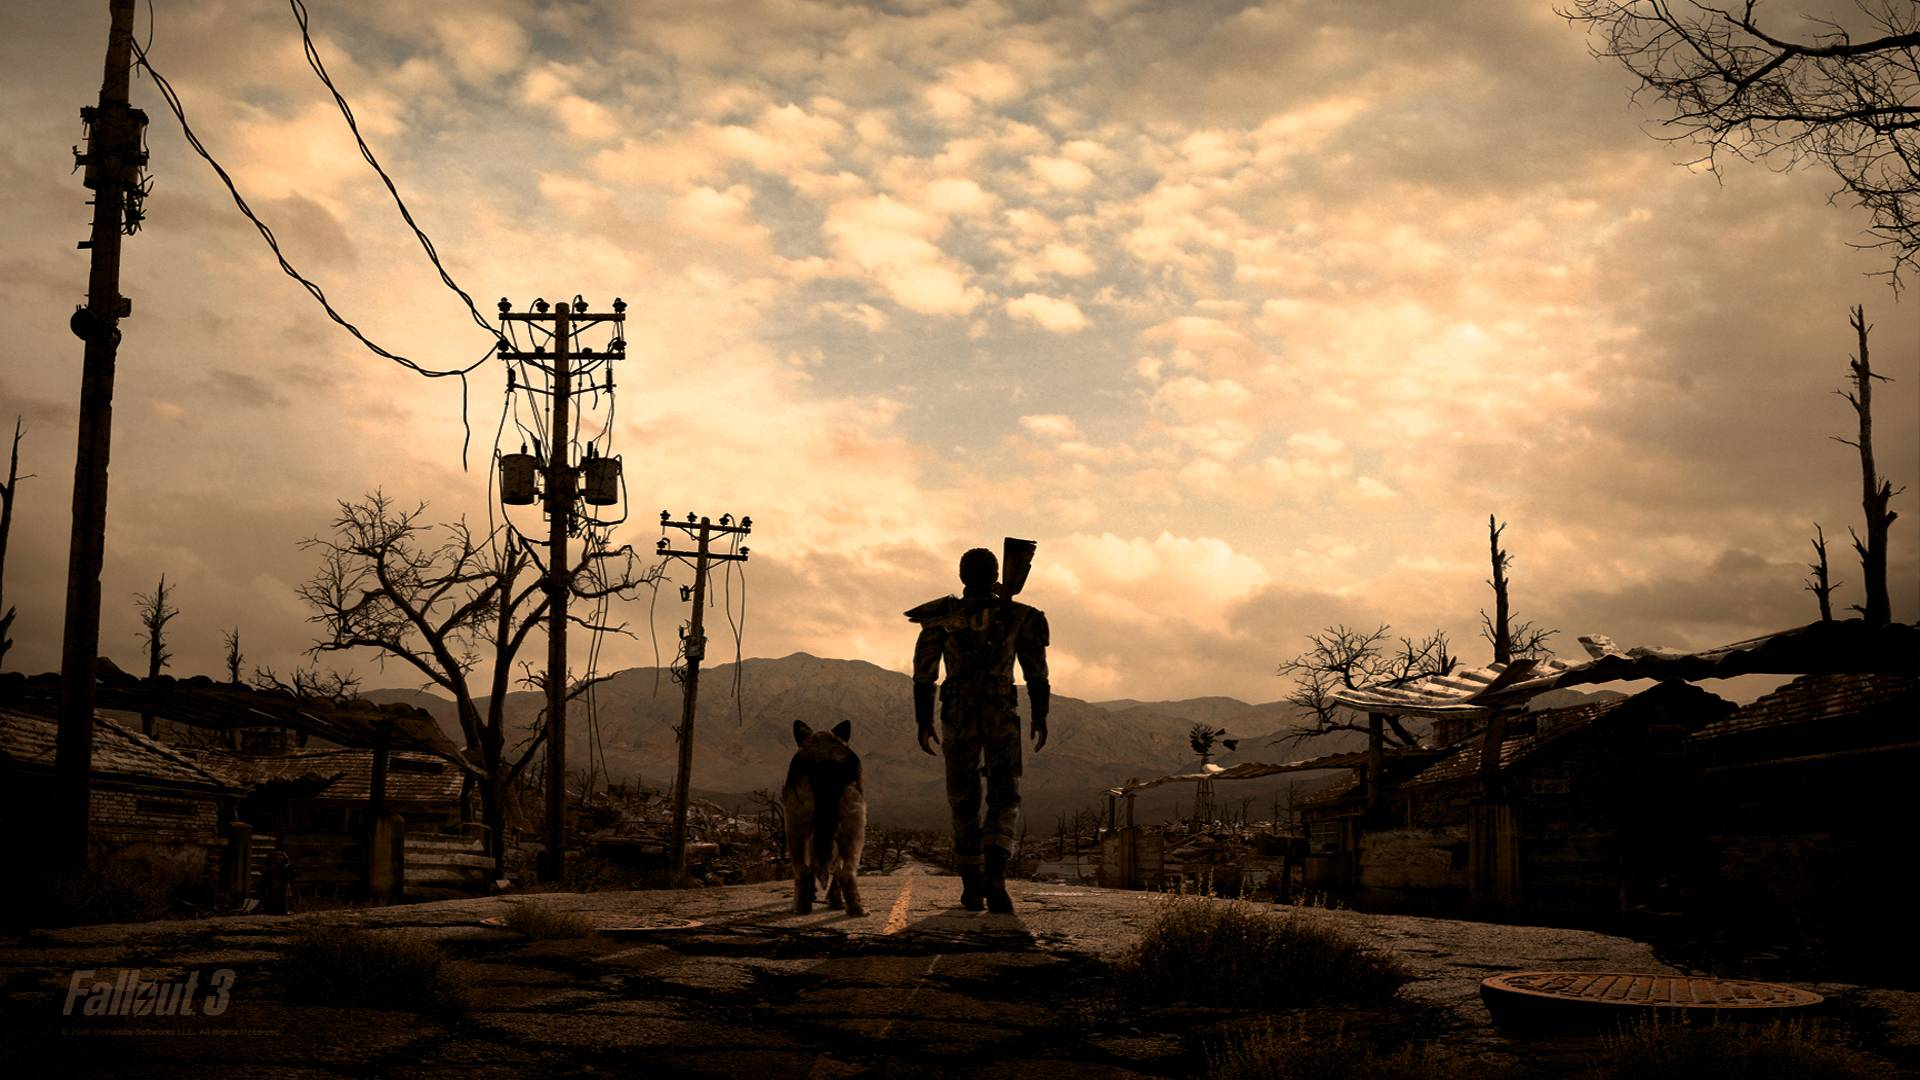 Fallout 3 Desktop Backgrounds